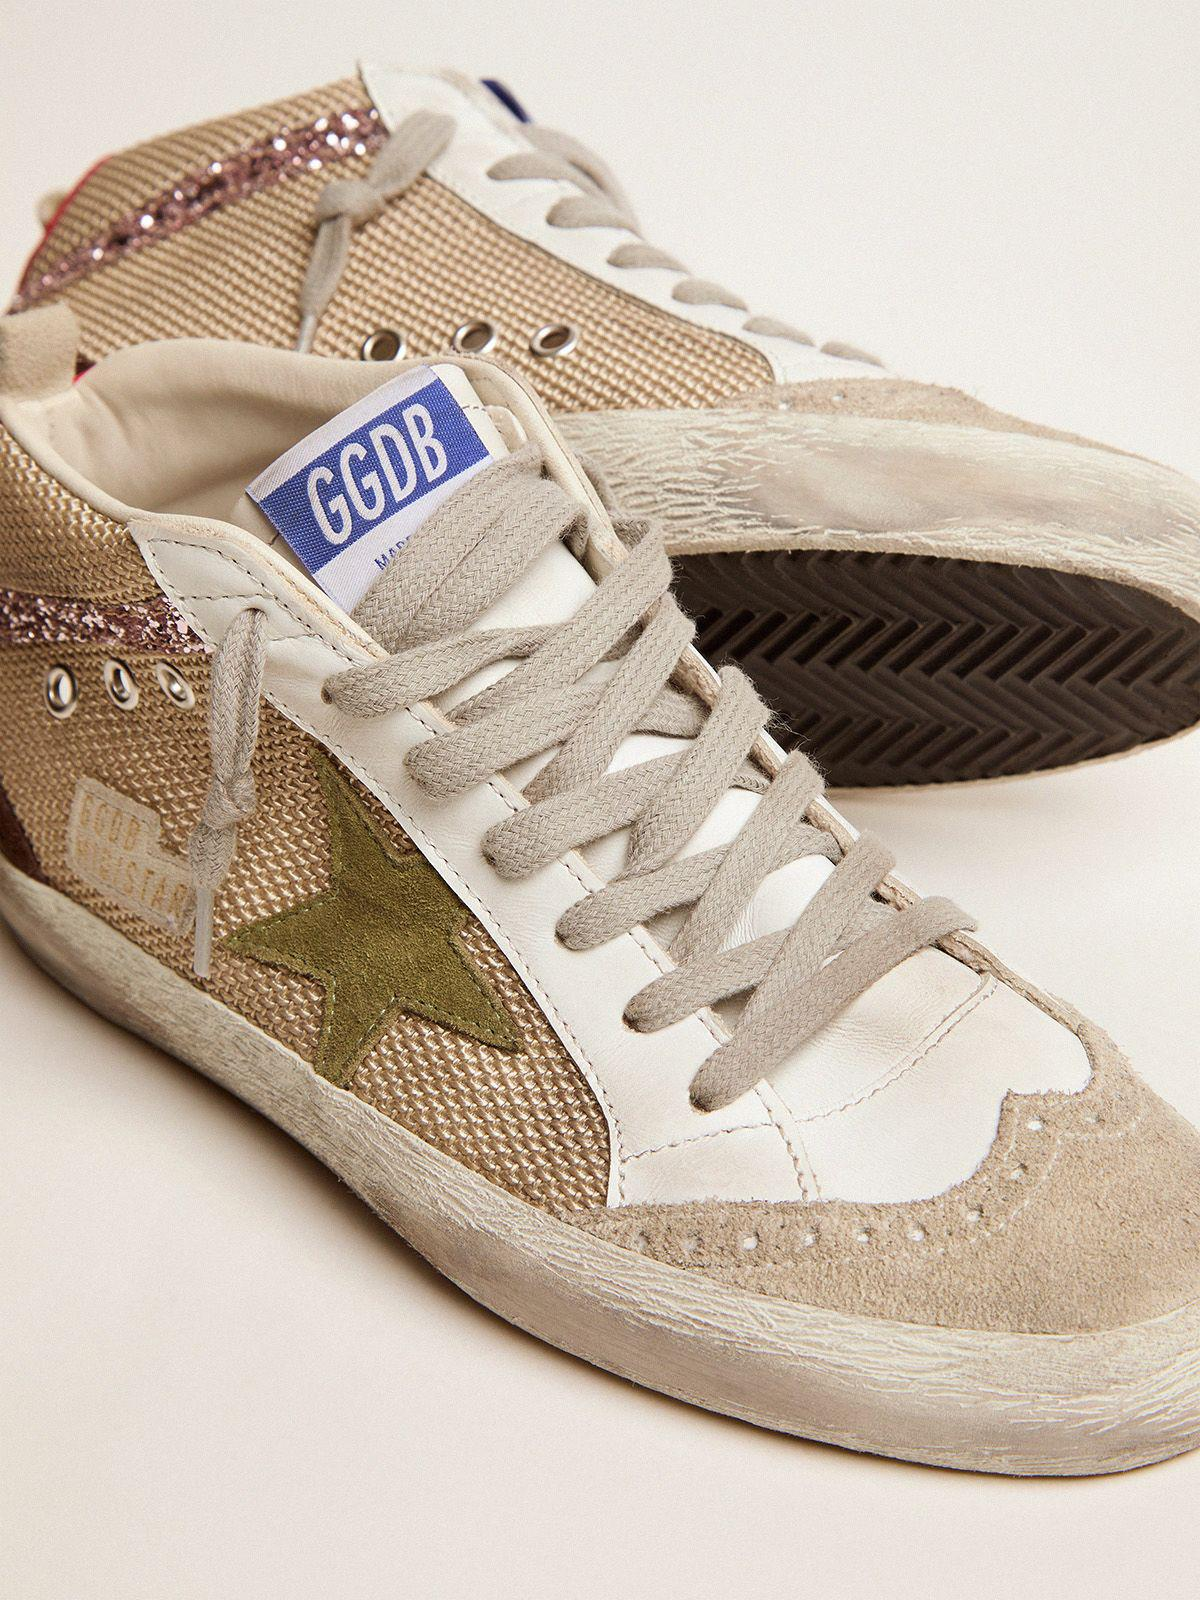 Mid Star sneakers in cream-colored mesh with suede and glitter details 2